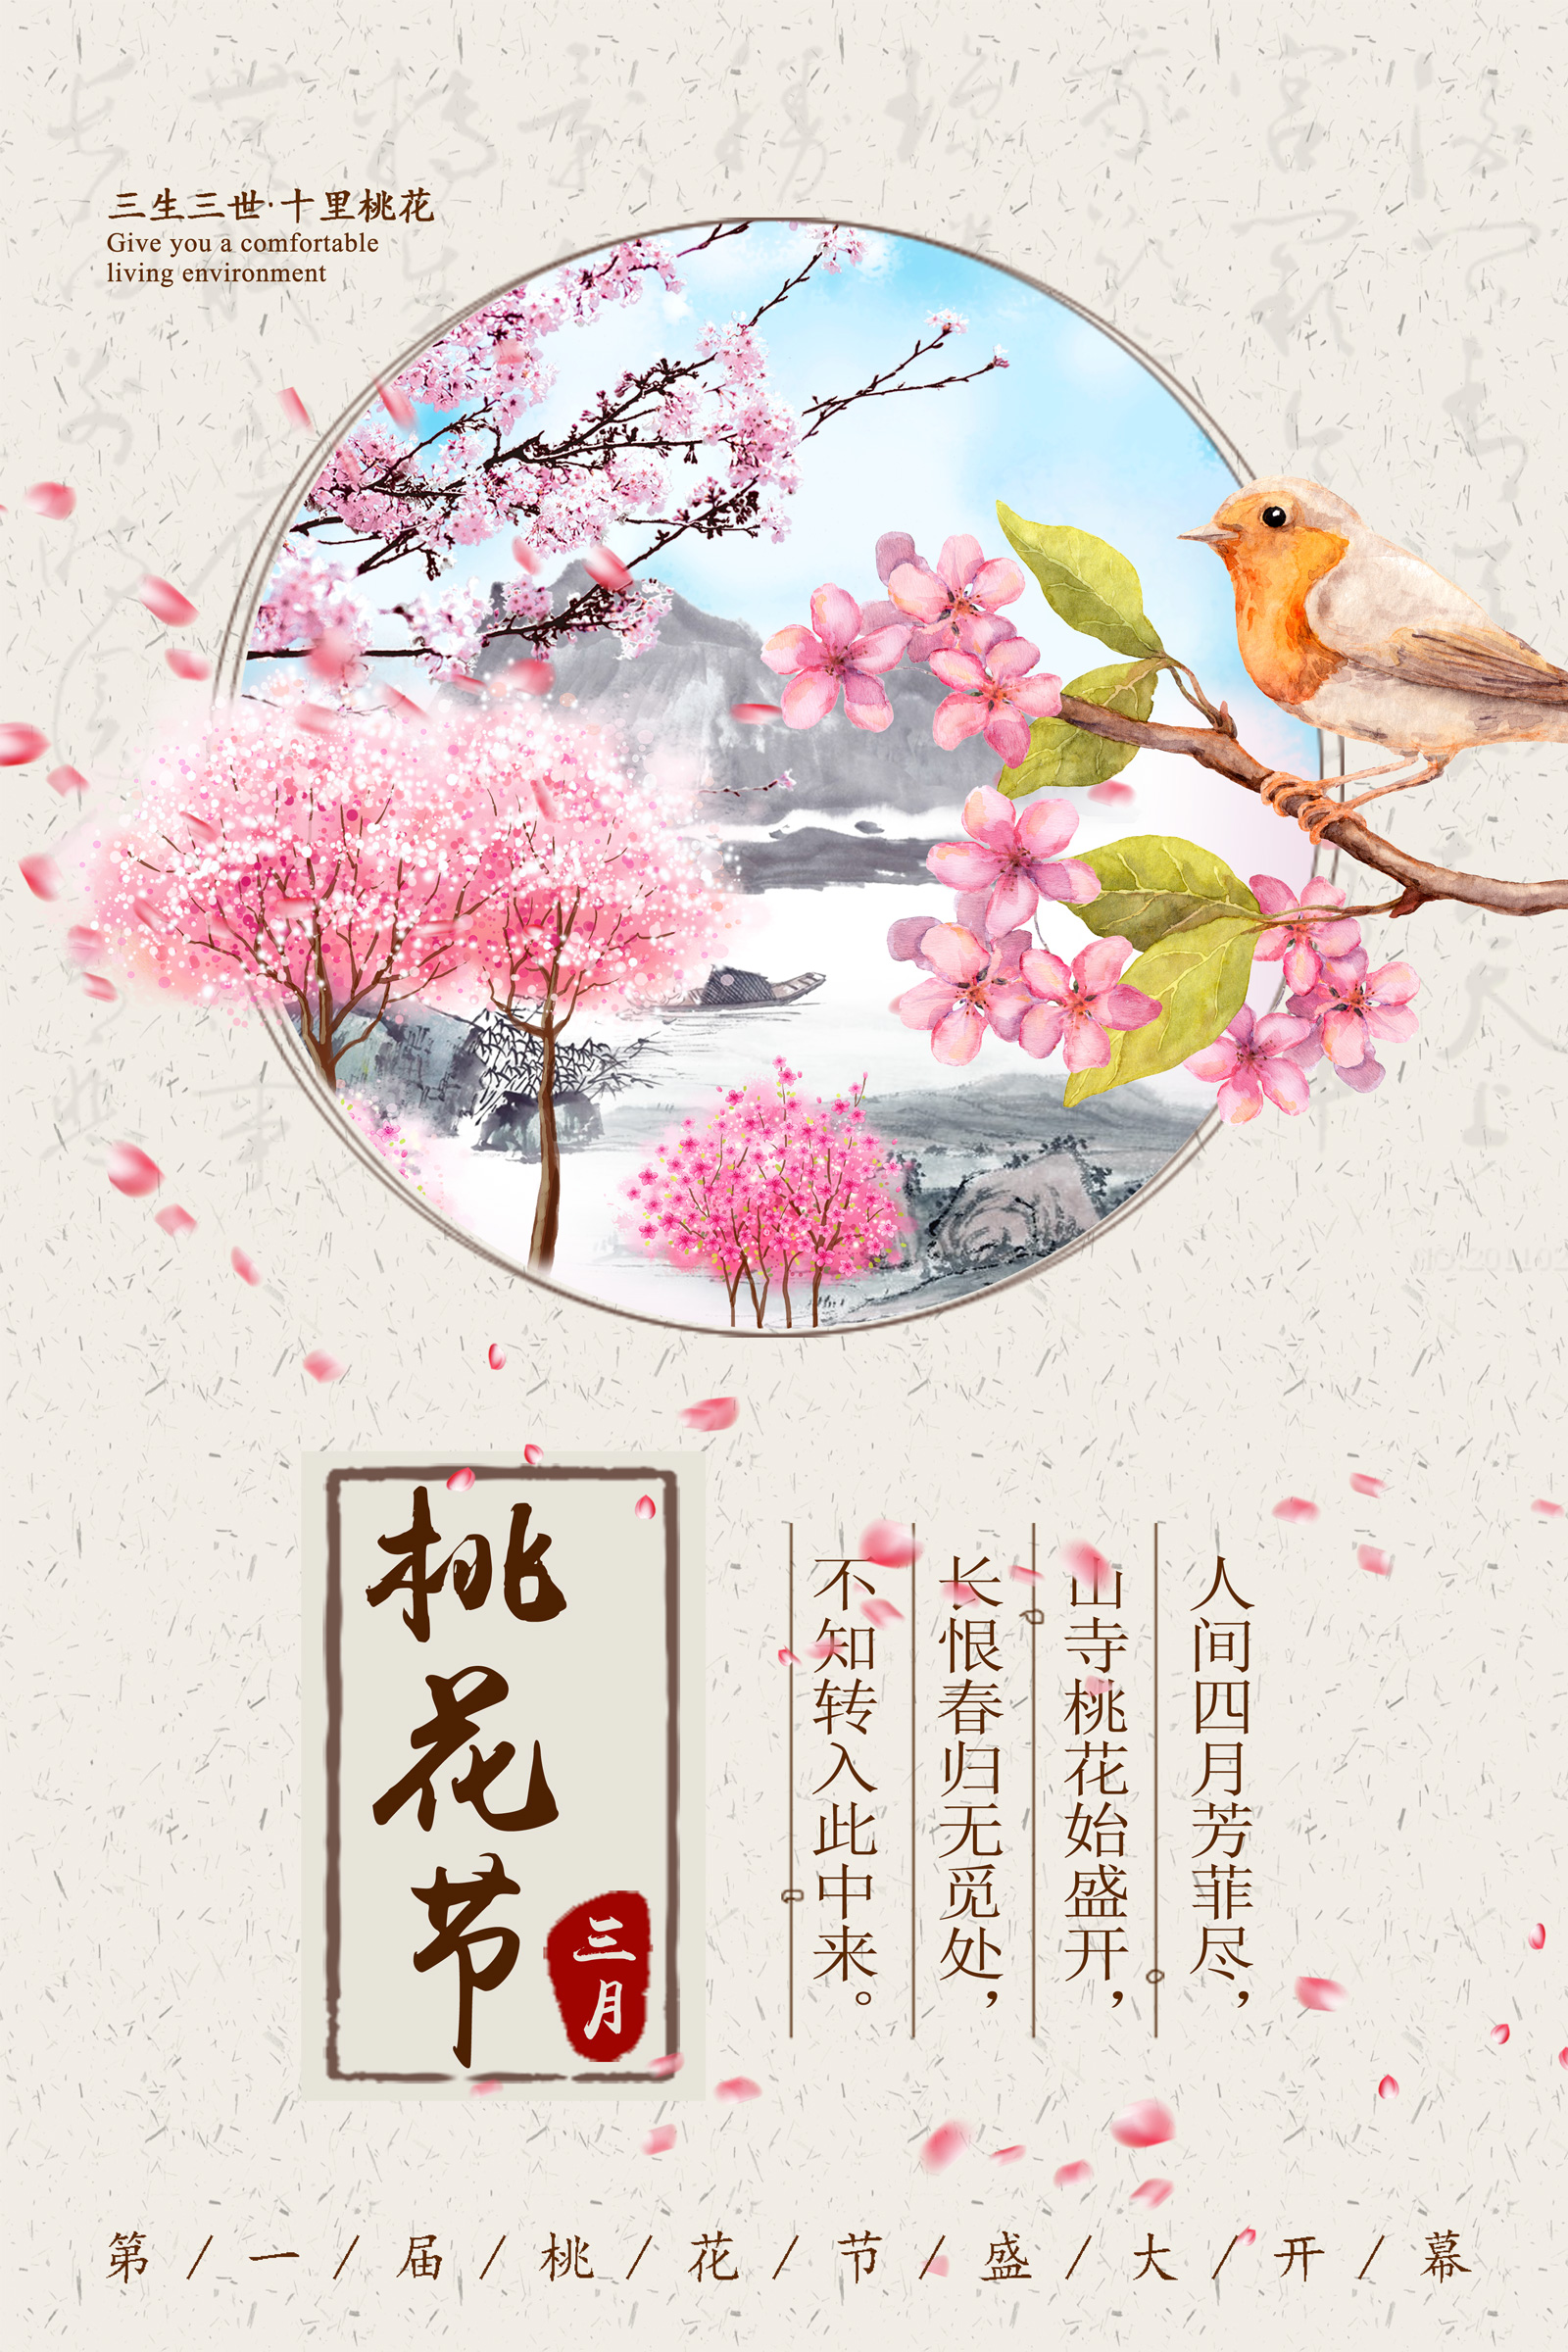 Pretty Peach Blossom Festival Poster Design PSD File Free Download